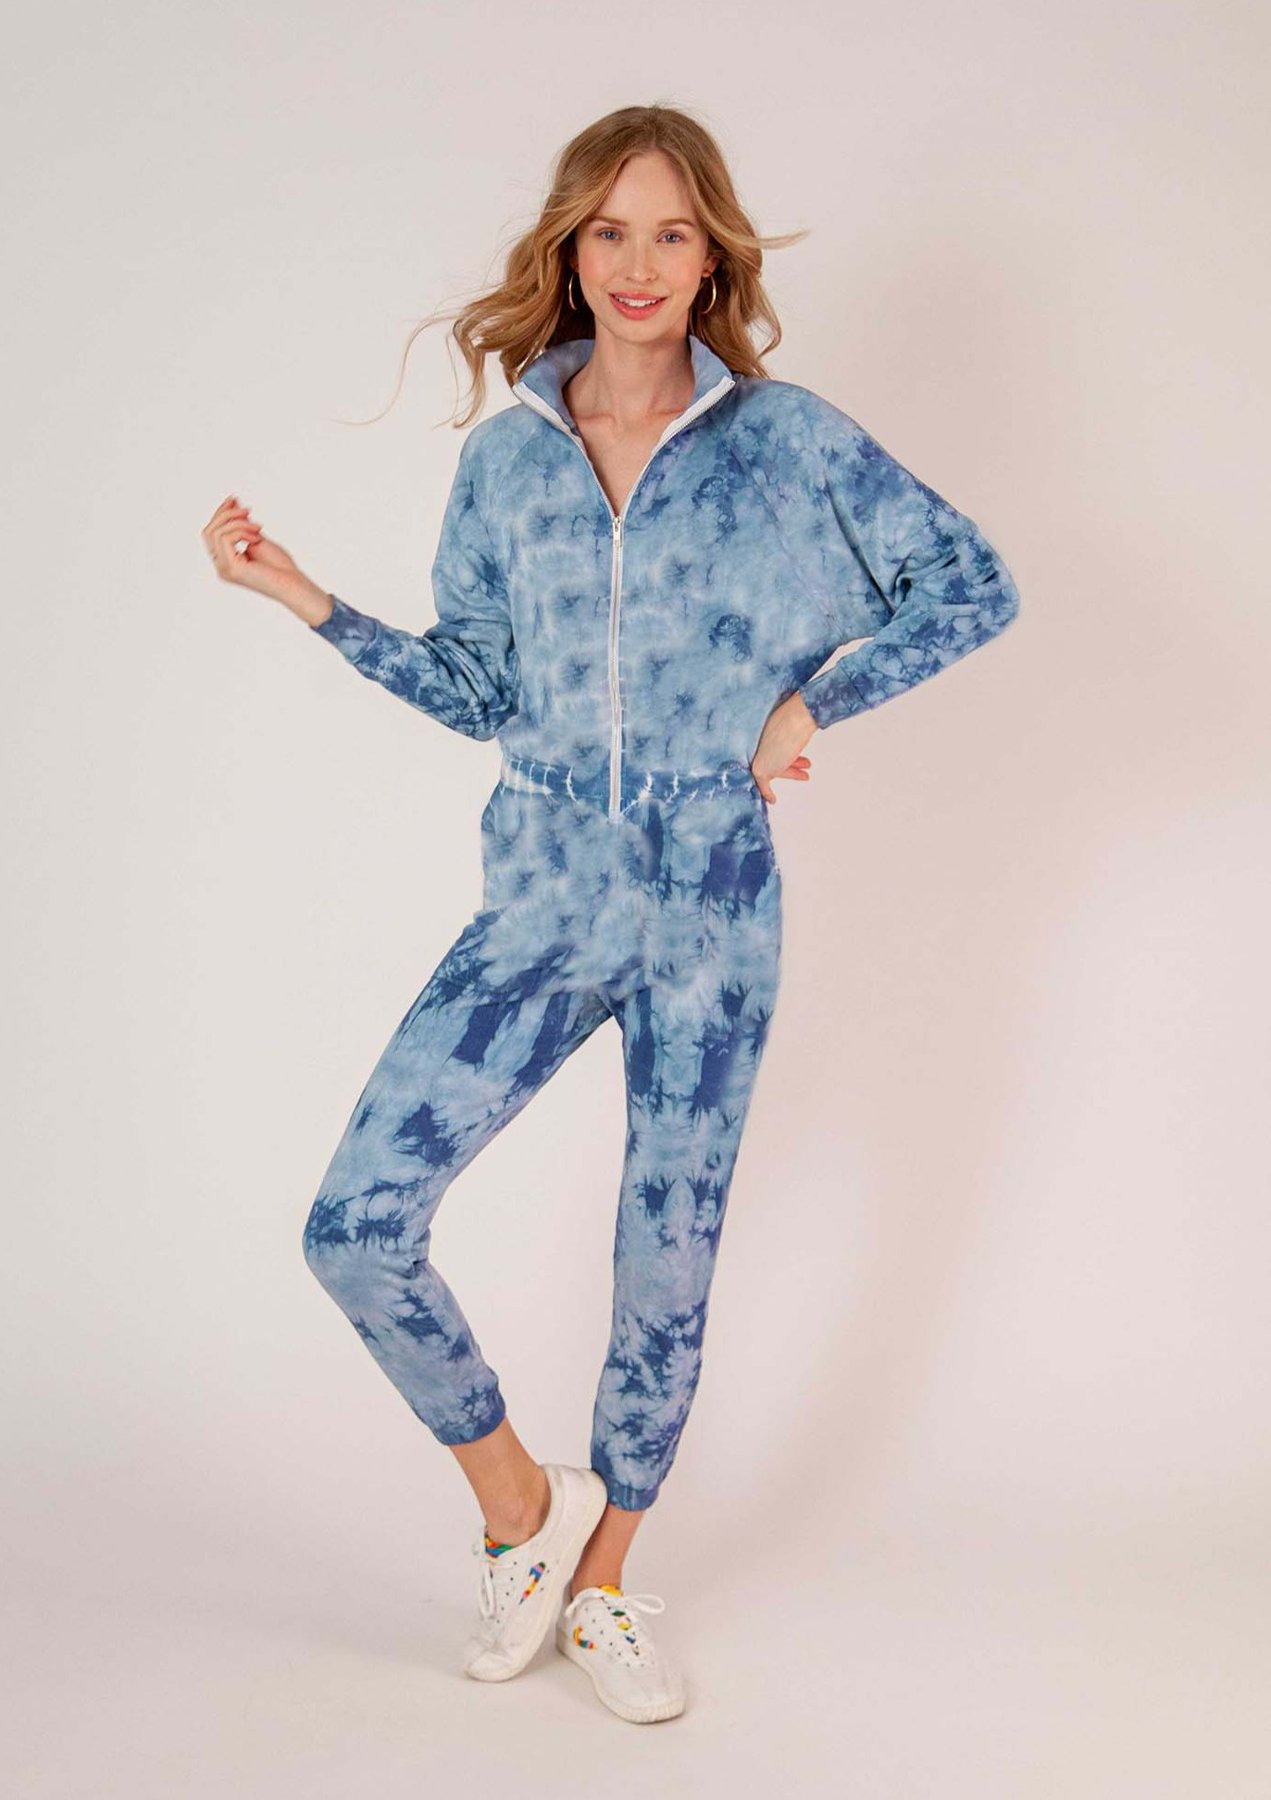 RESTORE SOFT TERRY JUMPSUIT - DUSTY BLUE TIE DYE by Lezat, available on shoplezat.com for $110 Alessandra Ambrosio Dress Exact Product